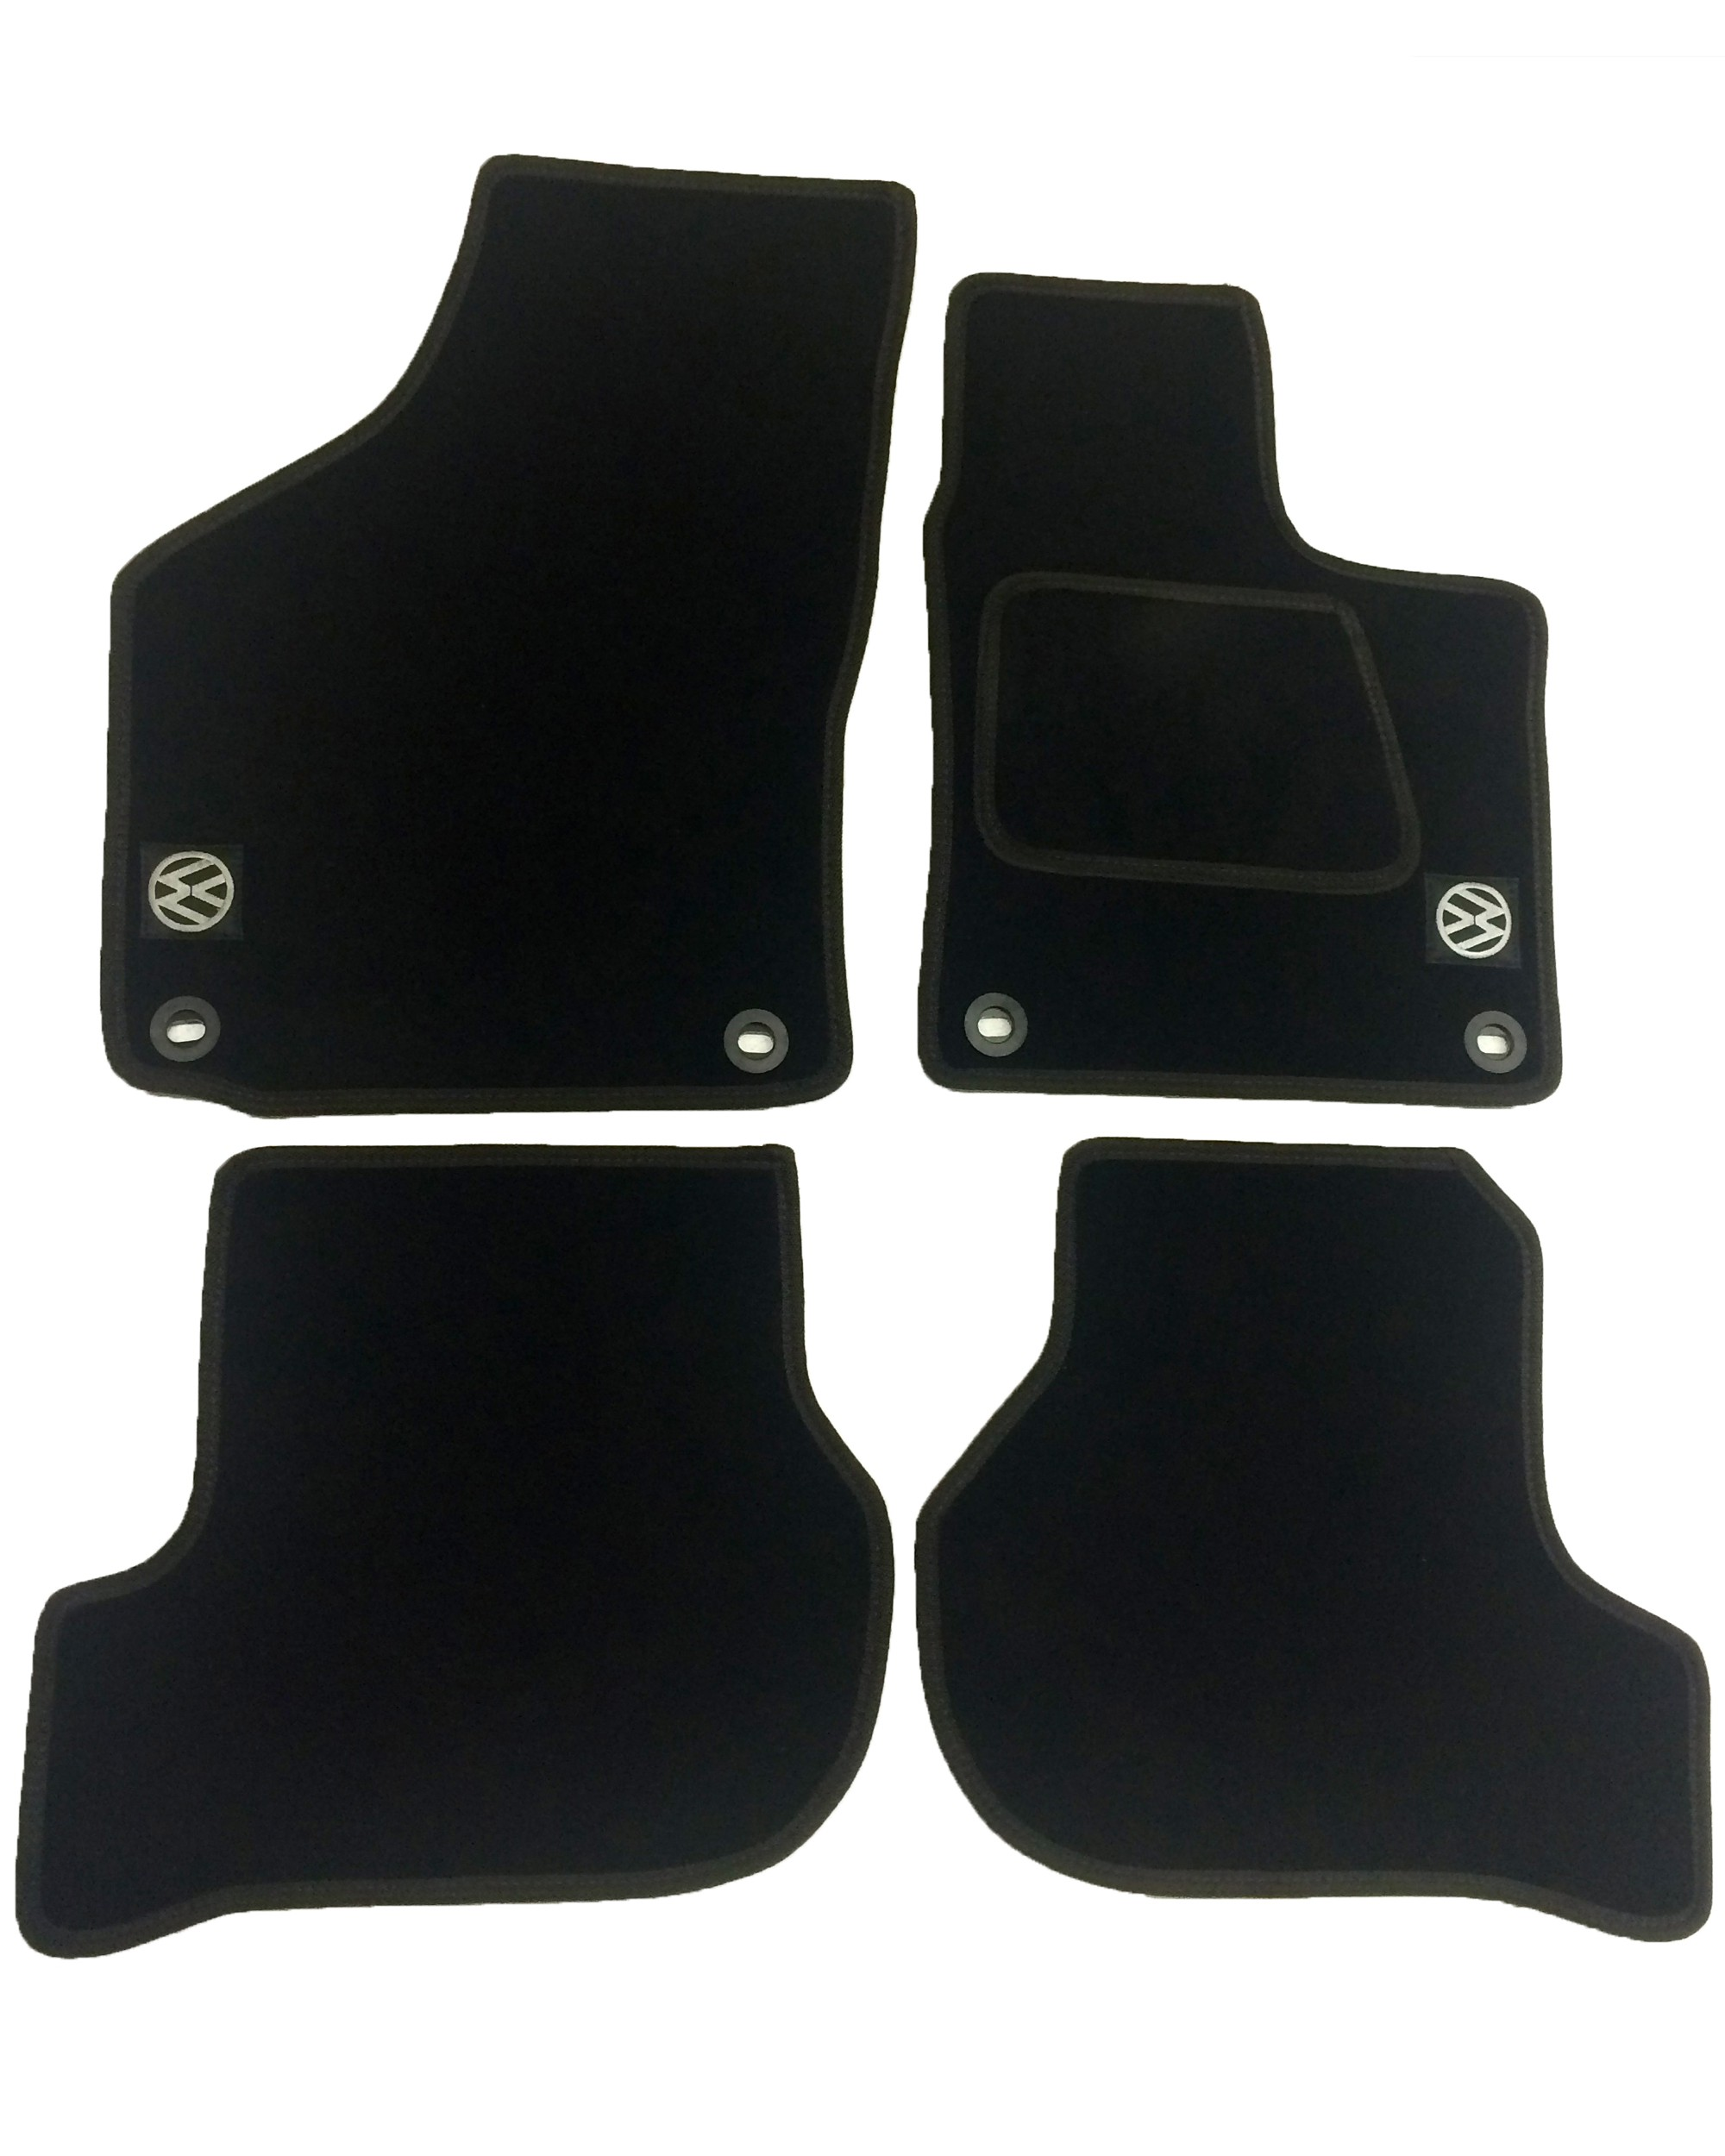 Volkswagen VW Golf MK5/MK6 Car Mats